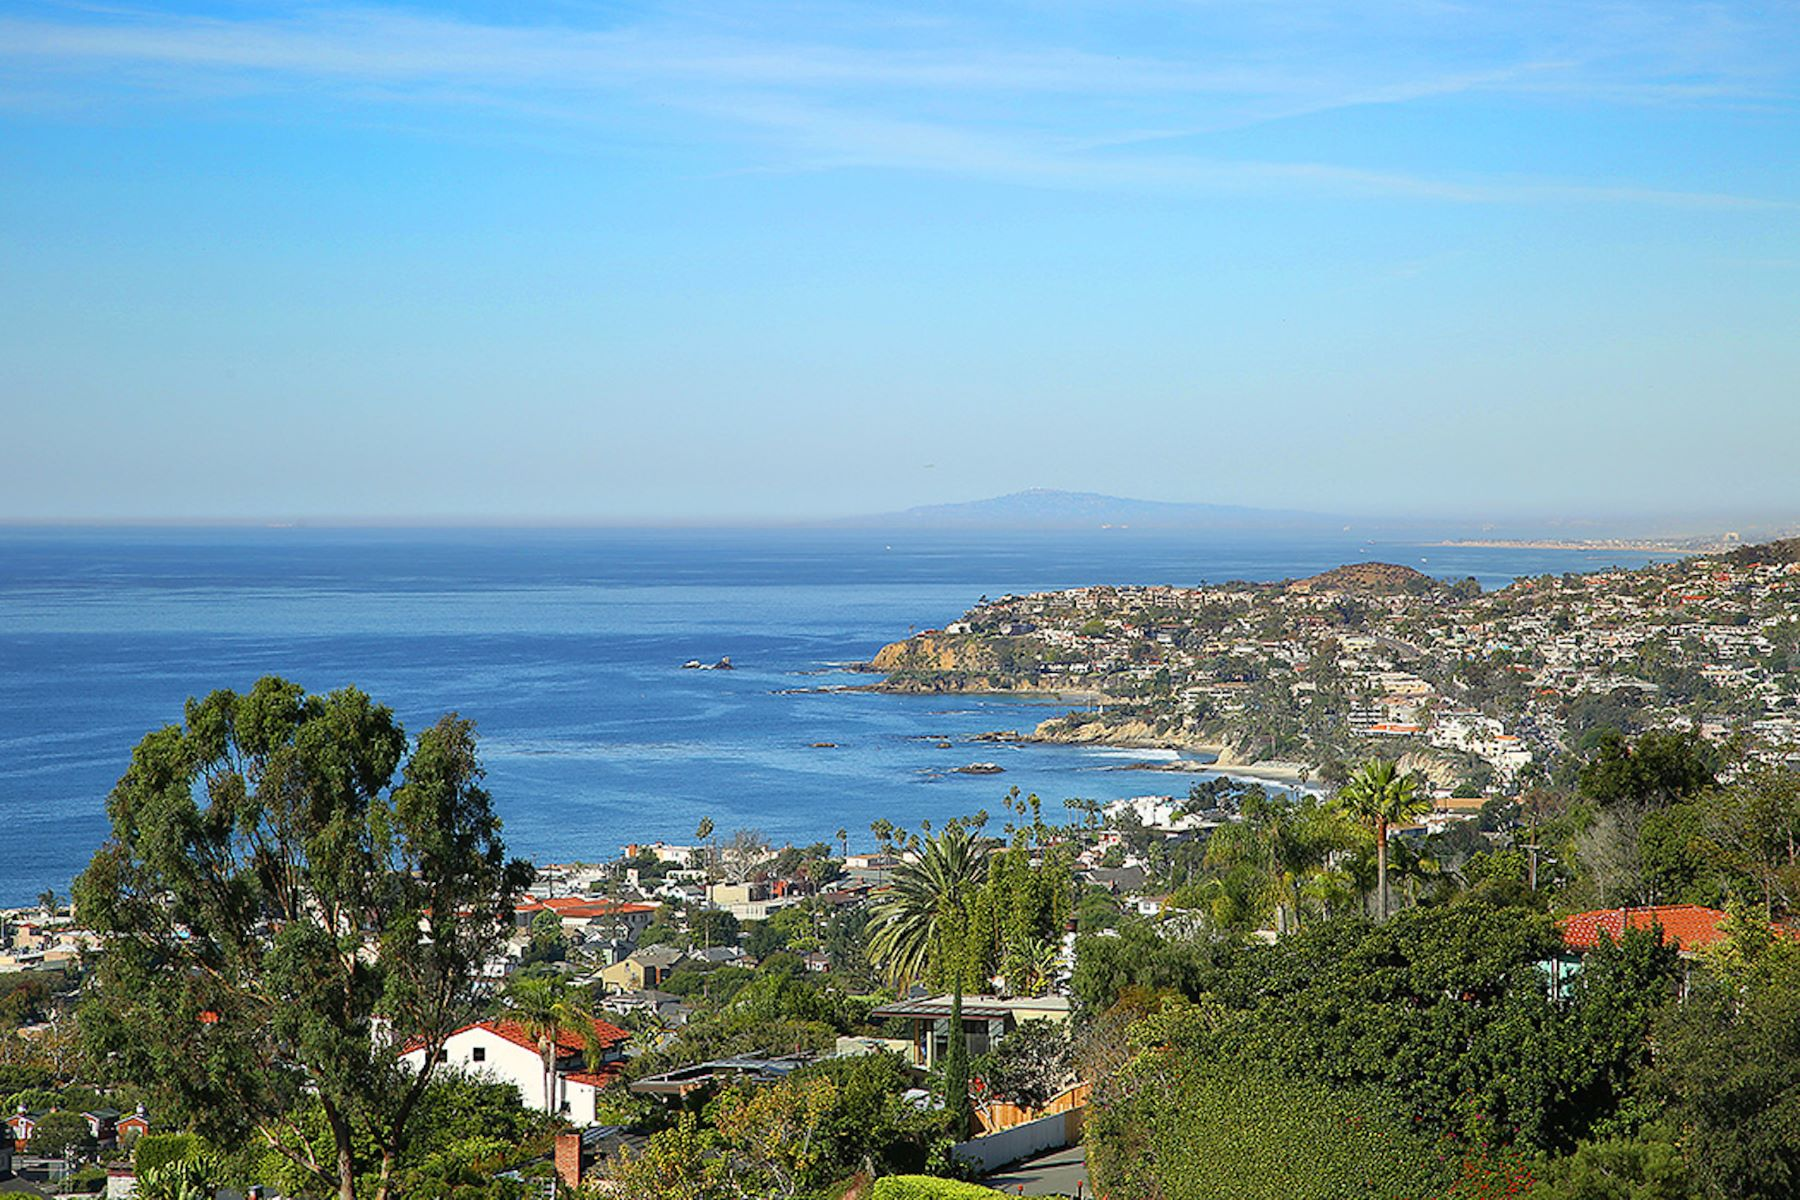 Terreno por un Venta en 845 Diamond Laguna Beach, California, 92651 Estados Unidos